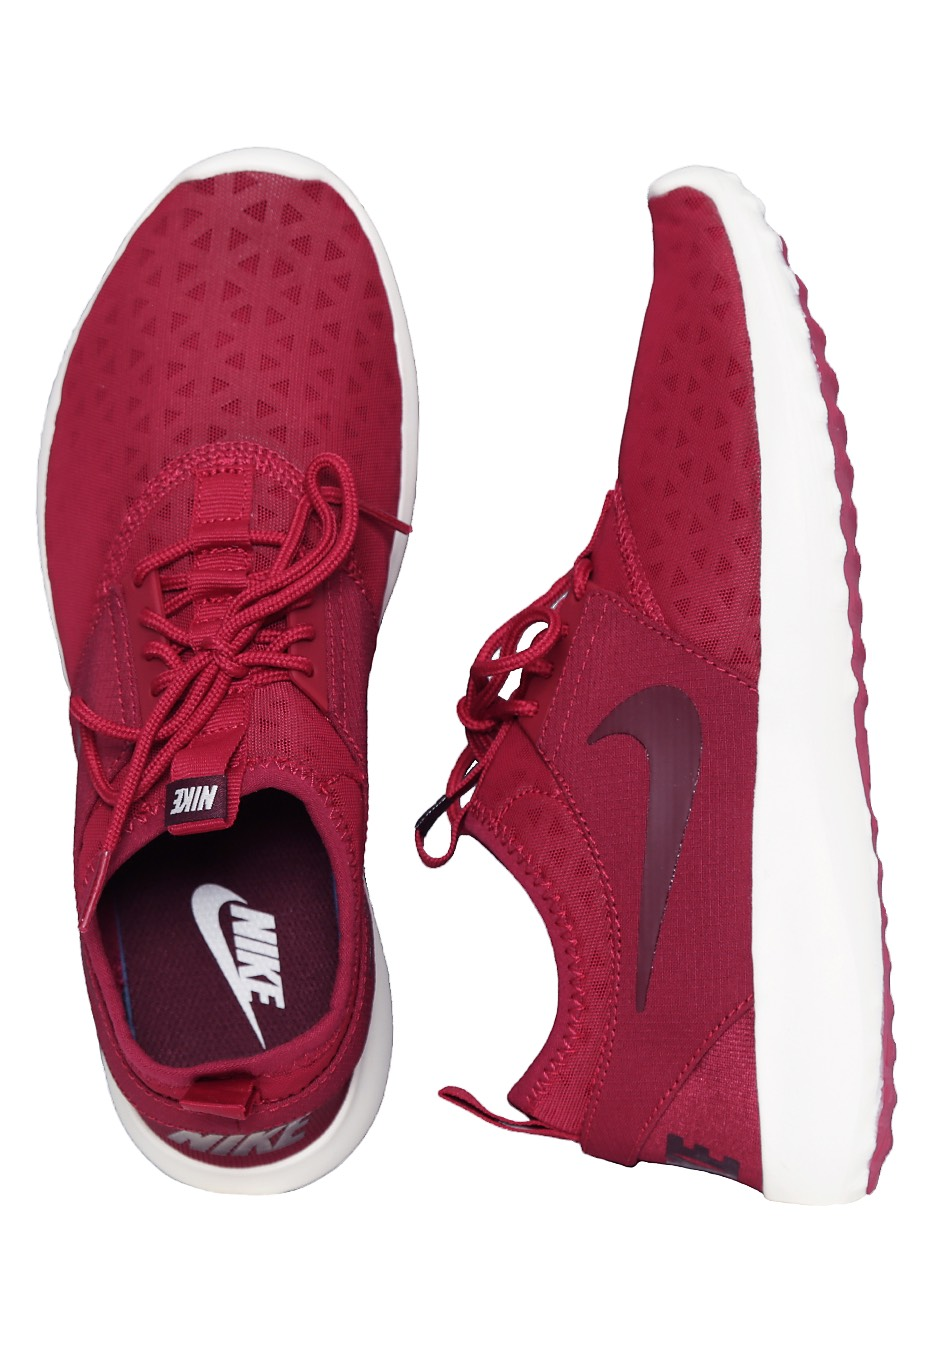 052ae196f25b Nike - Juvenate Noble Red Night Maroon Sail - Girl Shoes - Impericon.com UK